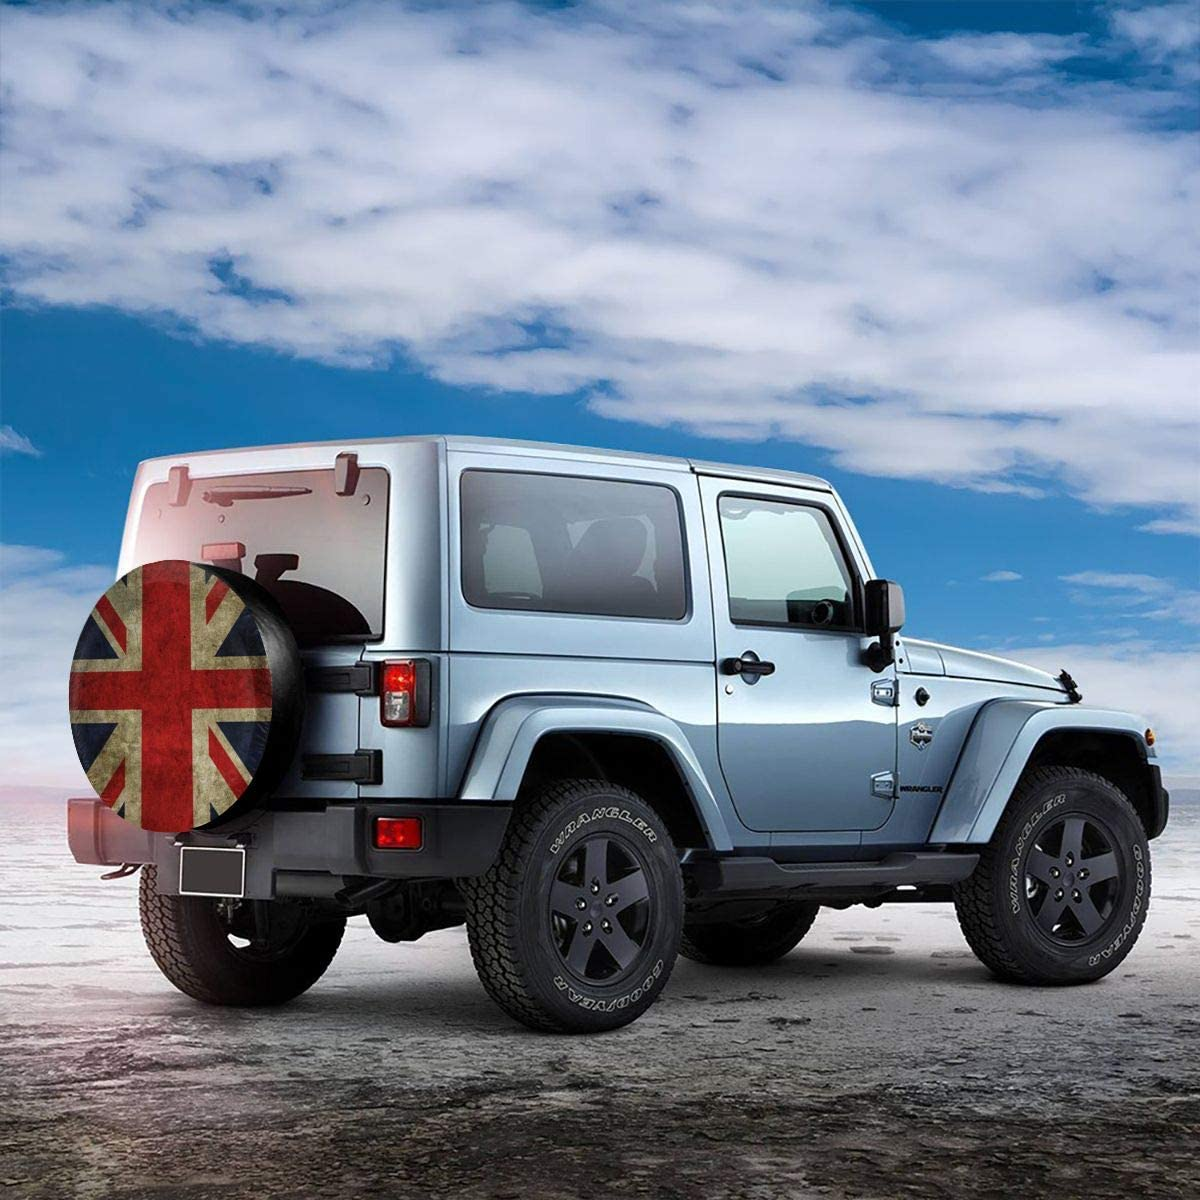 Union Jack British Flag Dust-Proof Wheel Tire Covers Universal Spare Tire Cover Fits 14,15,16,17 in